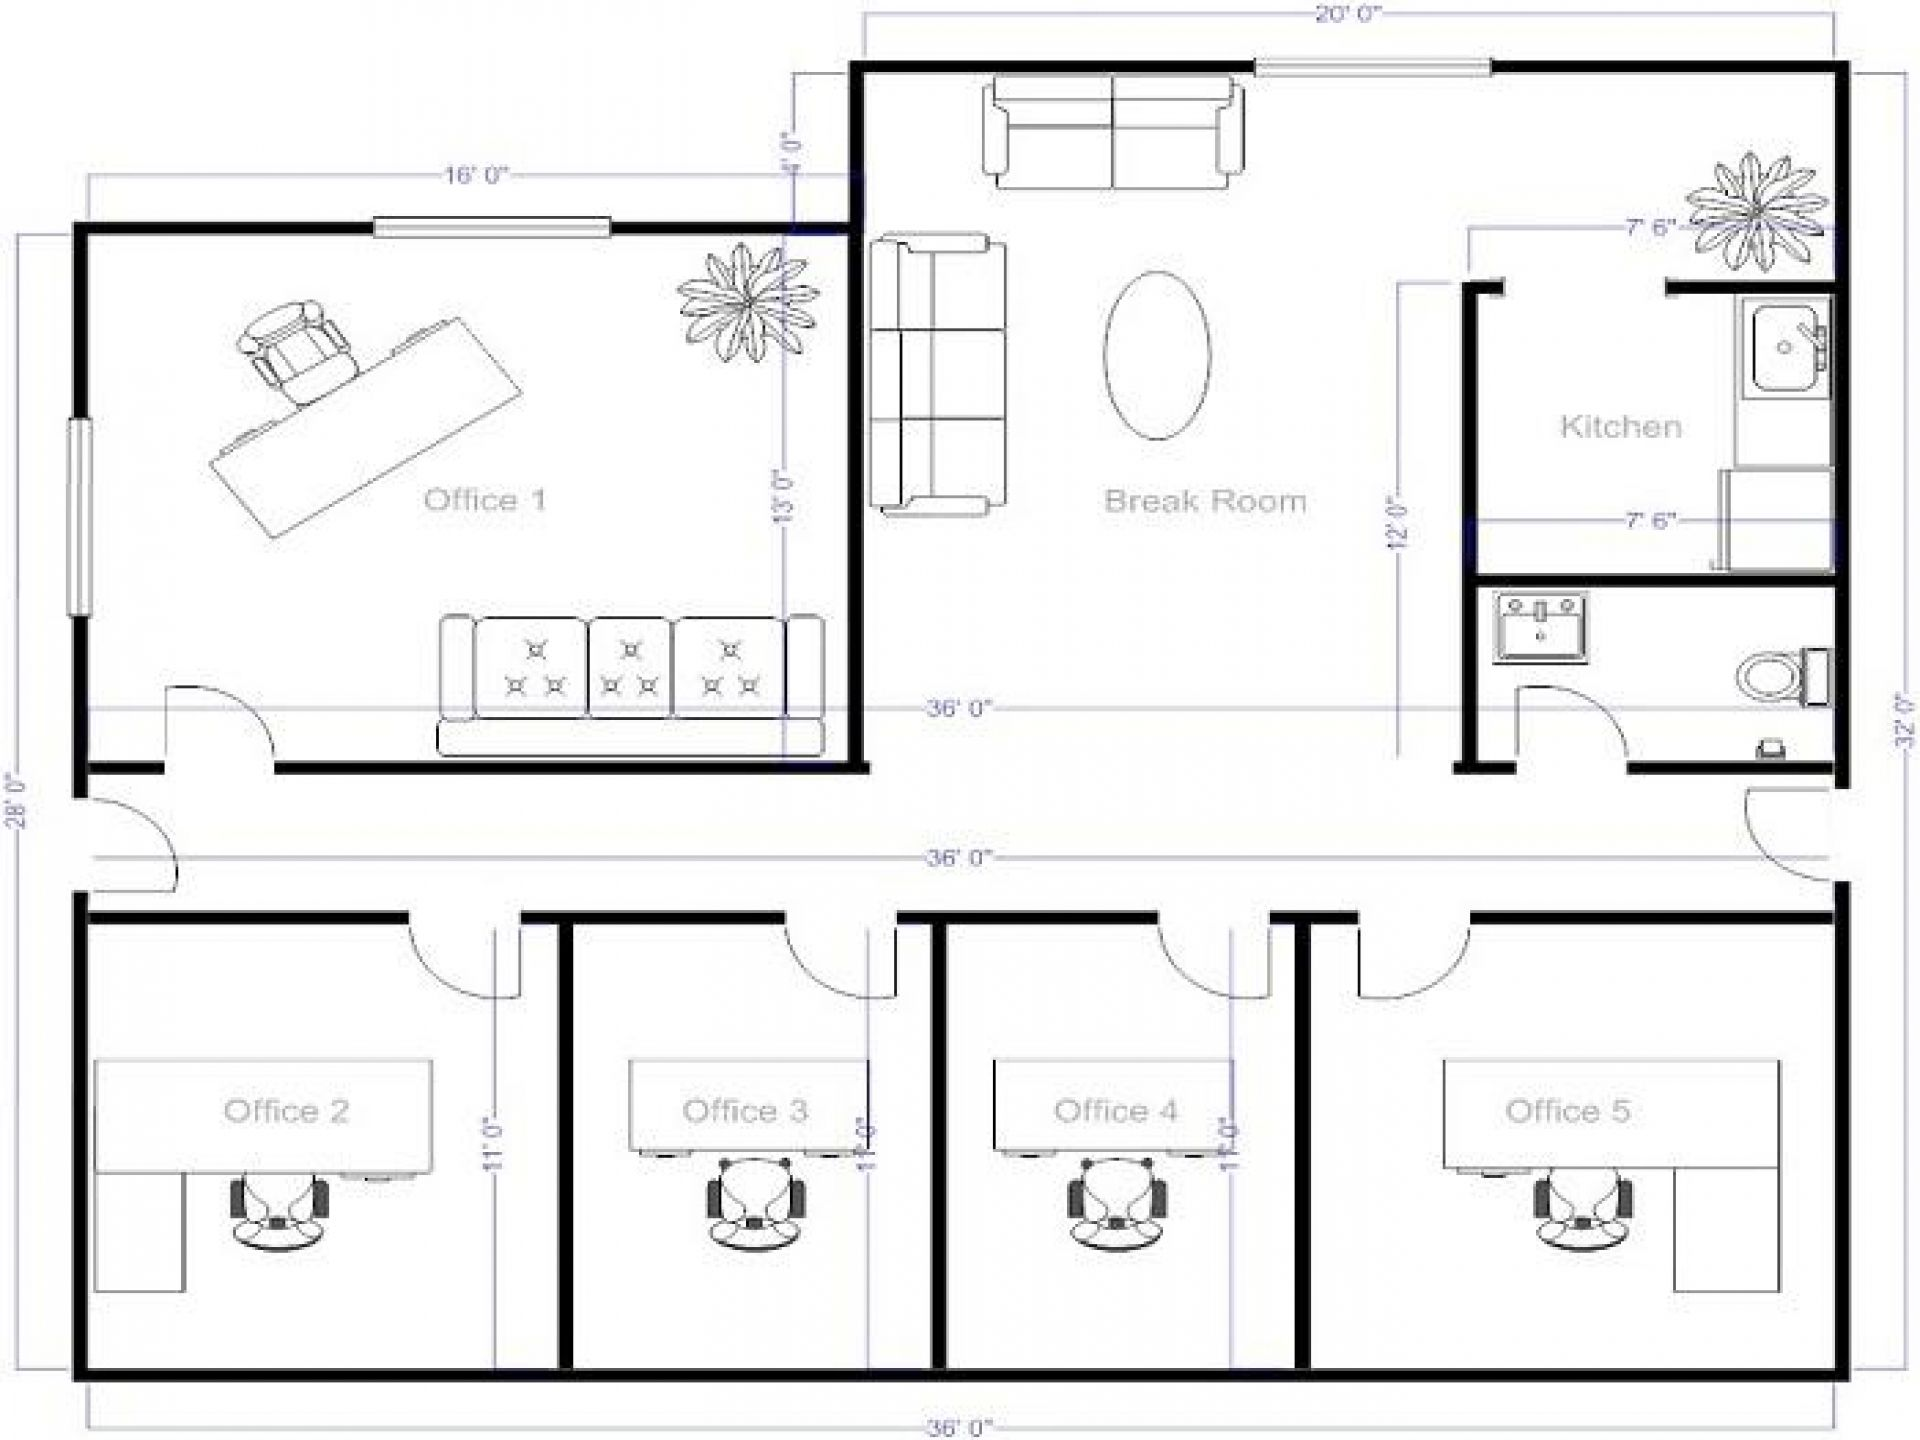 Floor Plan Templates Printable Along With Kitchen Cabi S Design Layout Online Furthermore Home Assisted Living Menu Le Further Grid Paper In